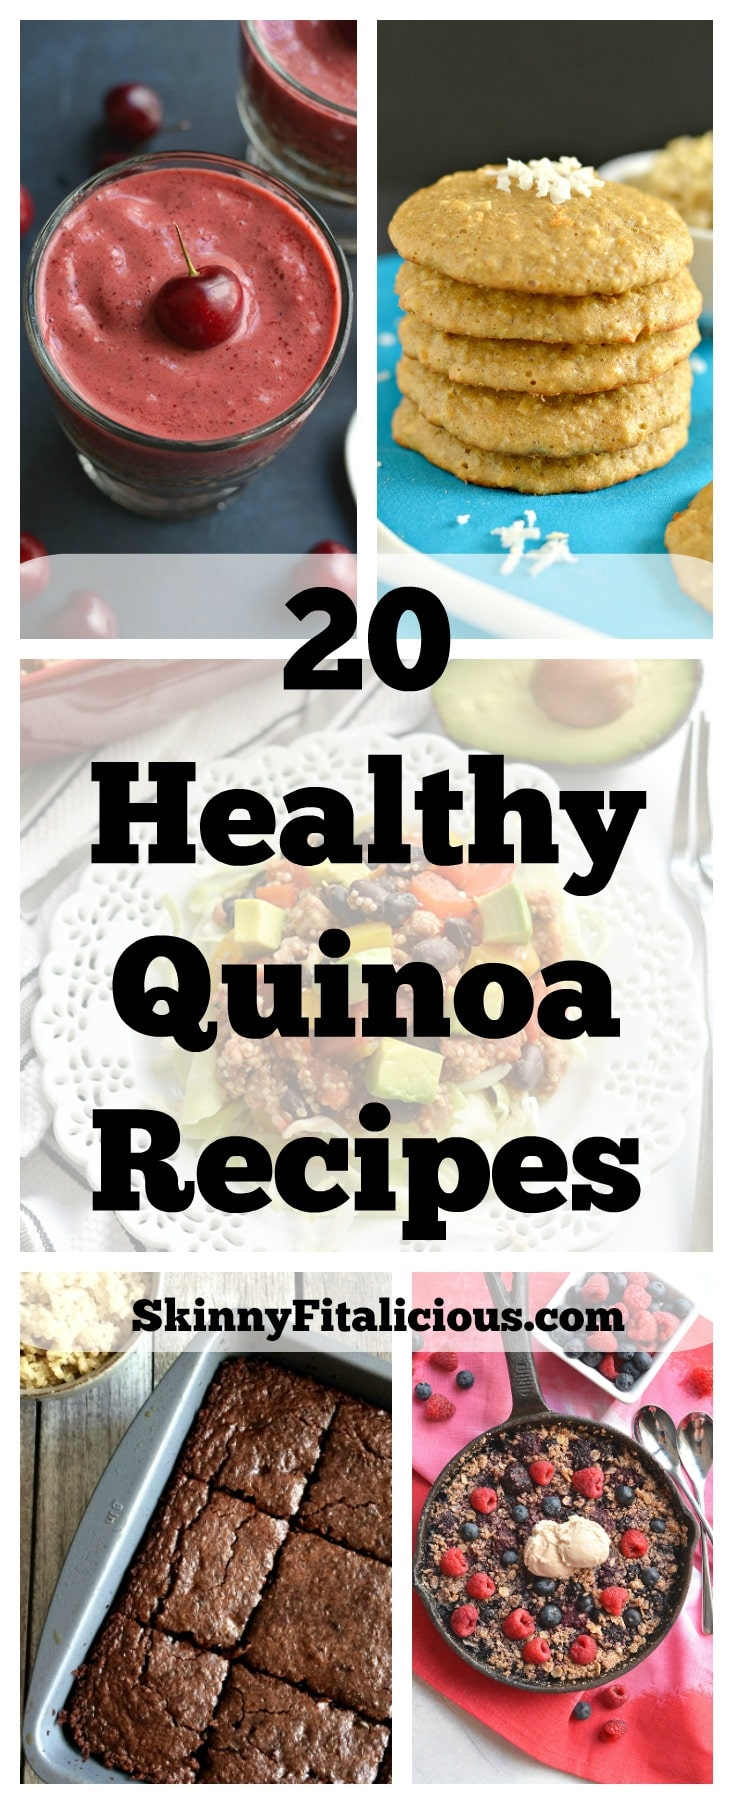 From sweet to savory, these20 Healthy Quinoa Recipes will show you how delicious and EASY quinoa can be to add to your meals and snacks.